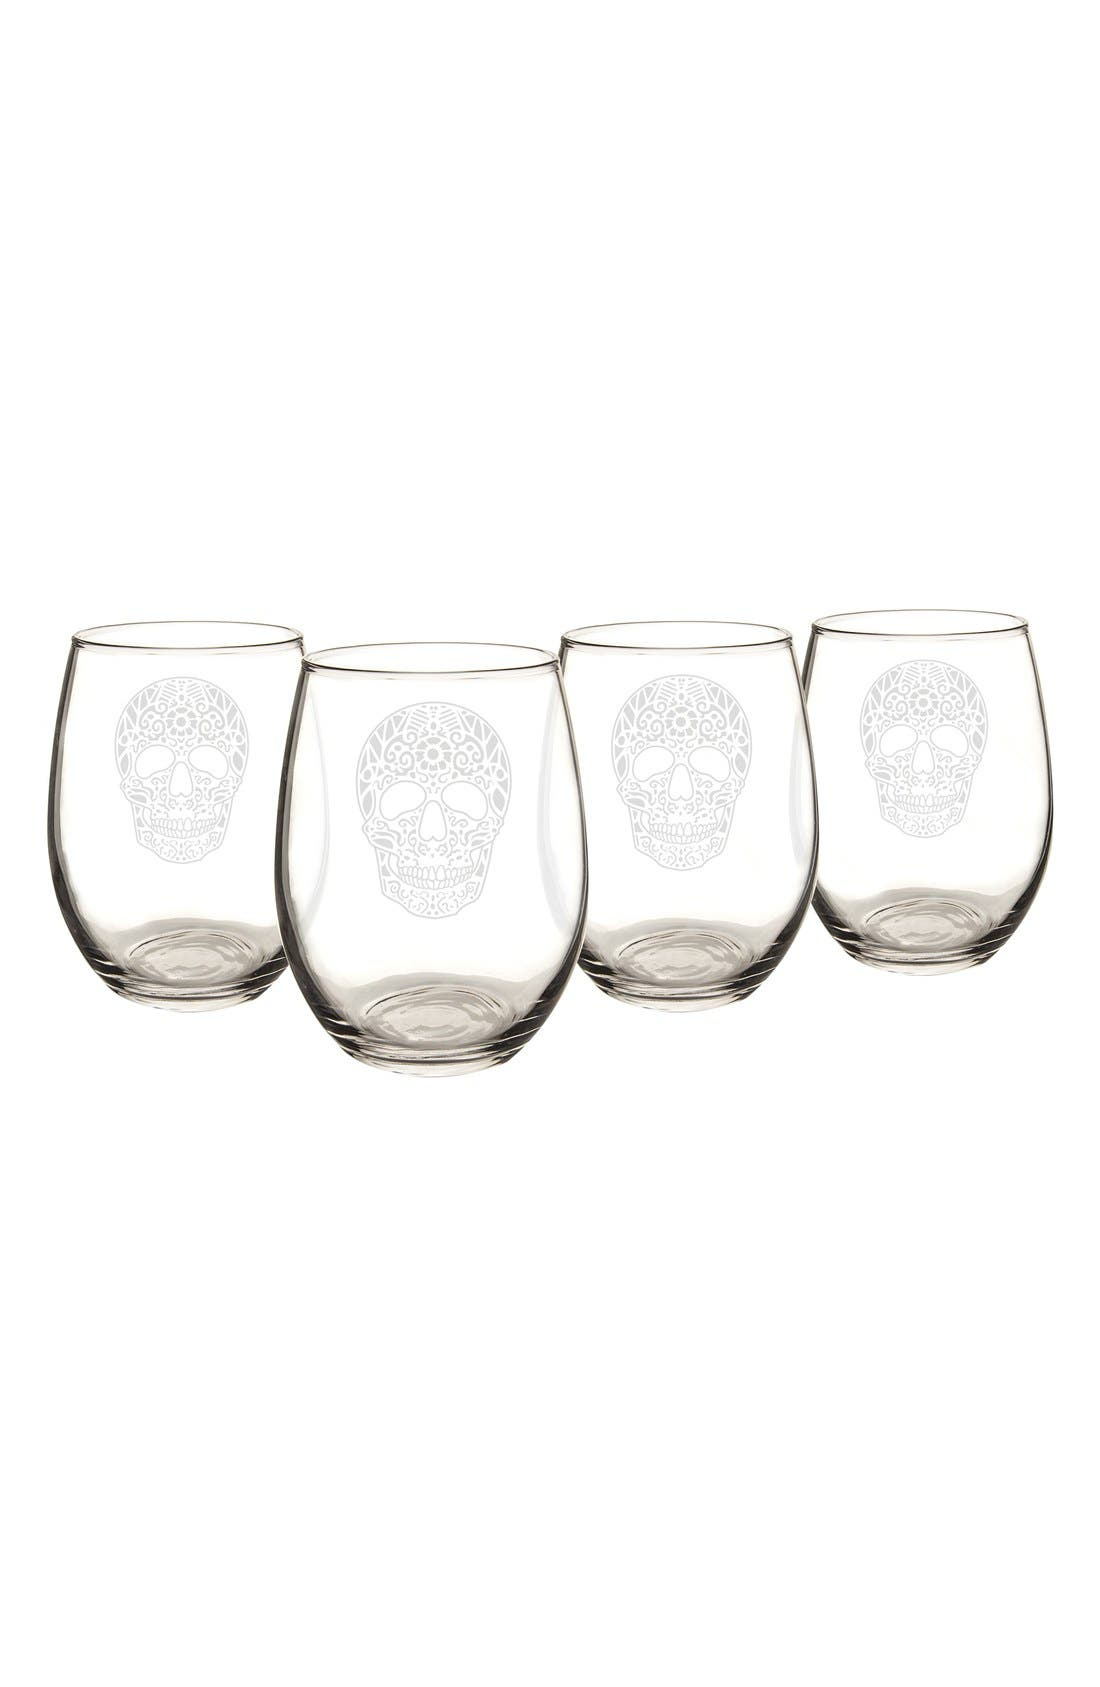 Sugar Skulls Set of 4 Stemless Wine Glasses,                             Main thumbnail 1, color,                             CLEAR